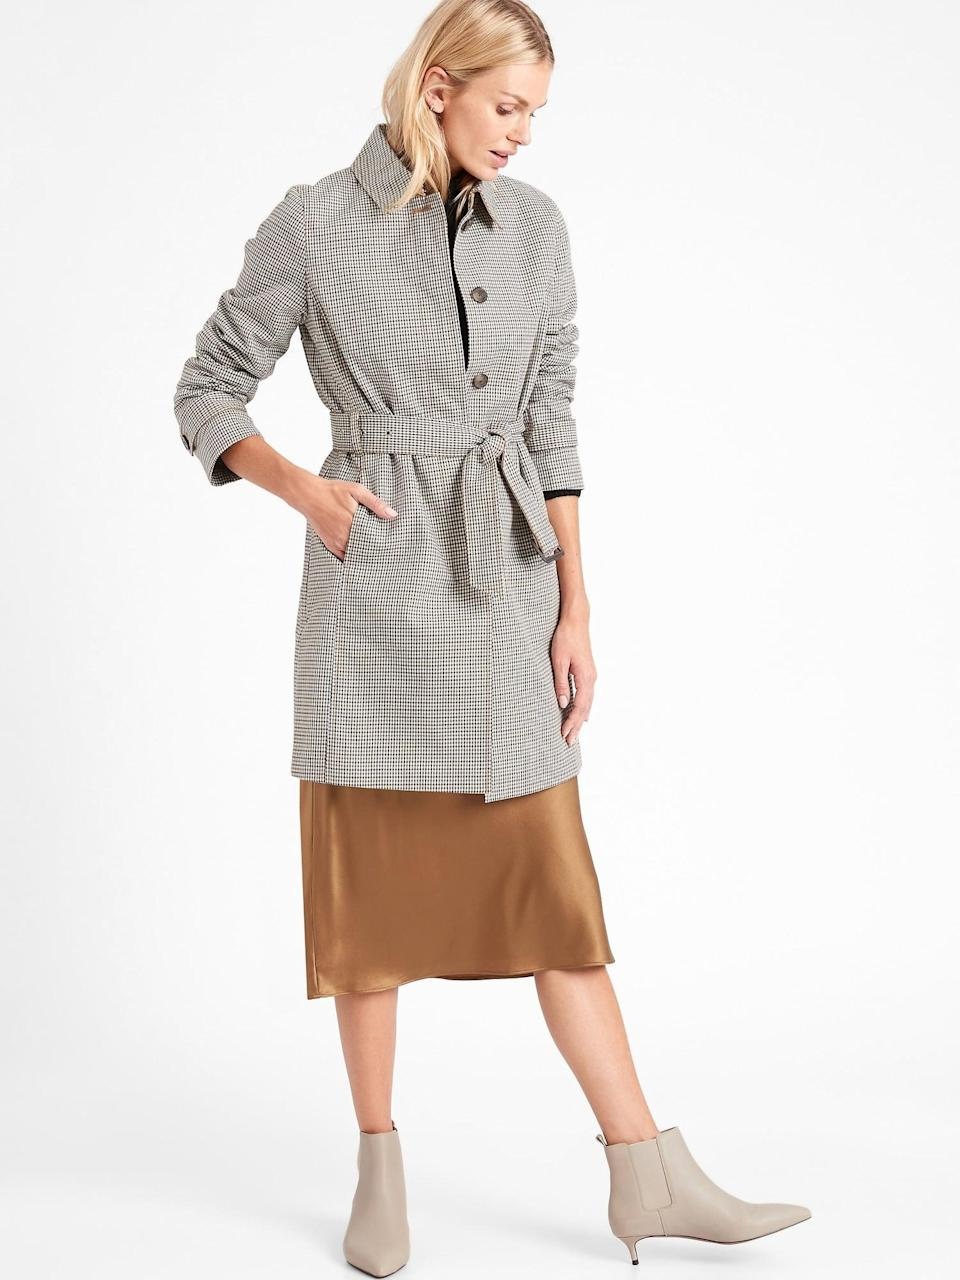 <p>Picking a patterned coat like this <span>Banana Republic Plaid Cotton Rain Coat</span> ($206, originally $229) stands out in a crowd of solids. </p>